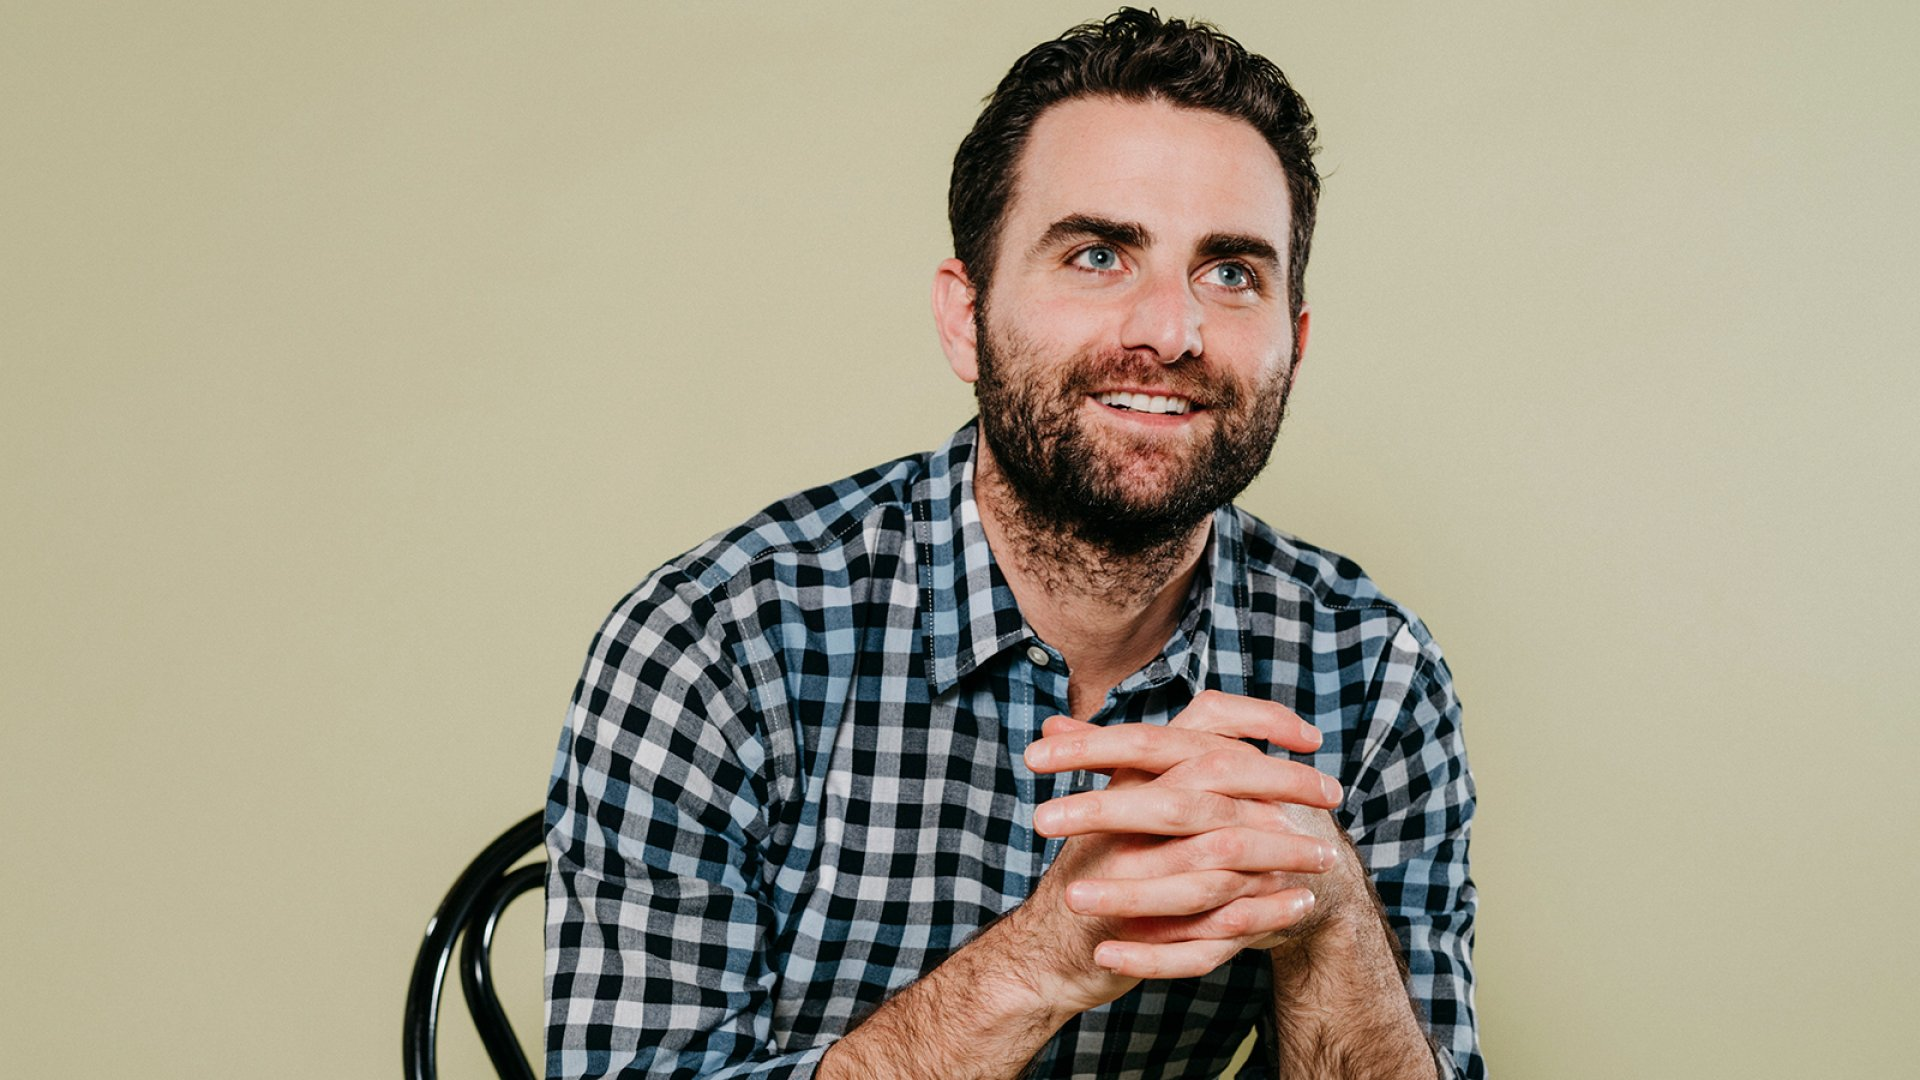 Peter Rahal, 31, is CEO of the Chicago-based RxBar, now a Kellogg subsidiary.